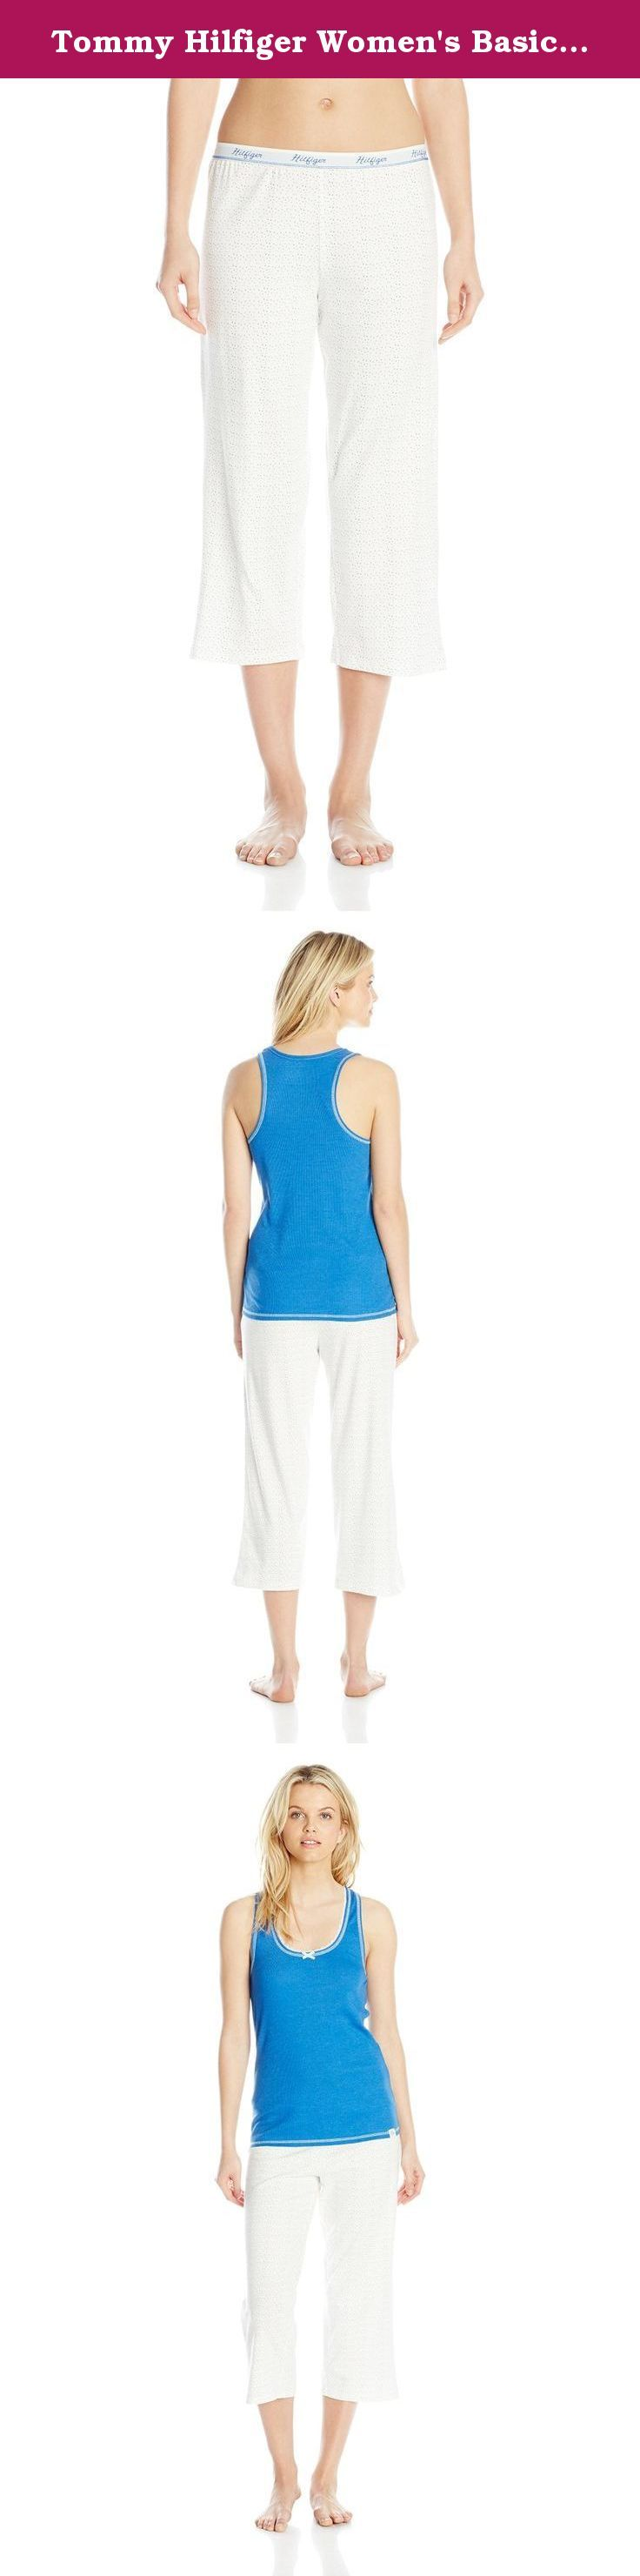 Tommy Hilfiger Women's Basic Logo Capri and Lace Cami Set, Nautical Blue/Nautical Bubbles, Medium. This classic Tommy Hilfiger rib tank and logo pajama capri is perfect for lounging around in.